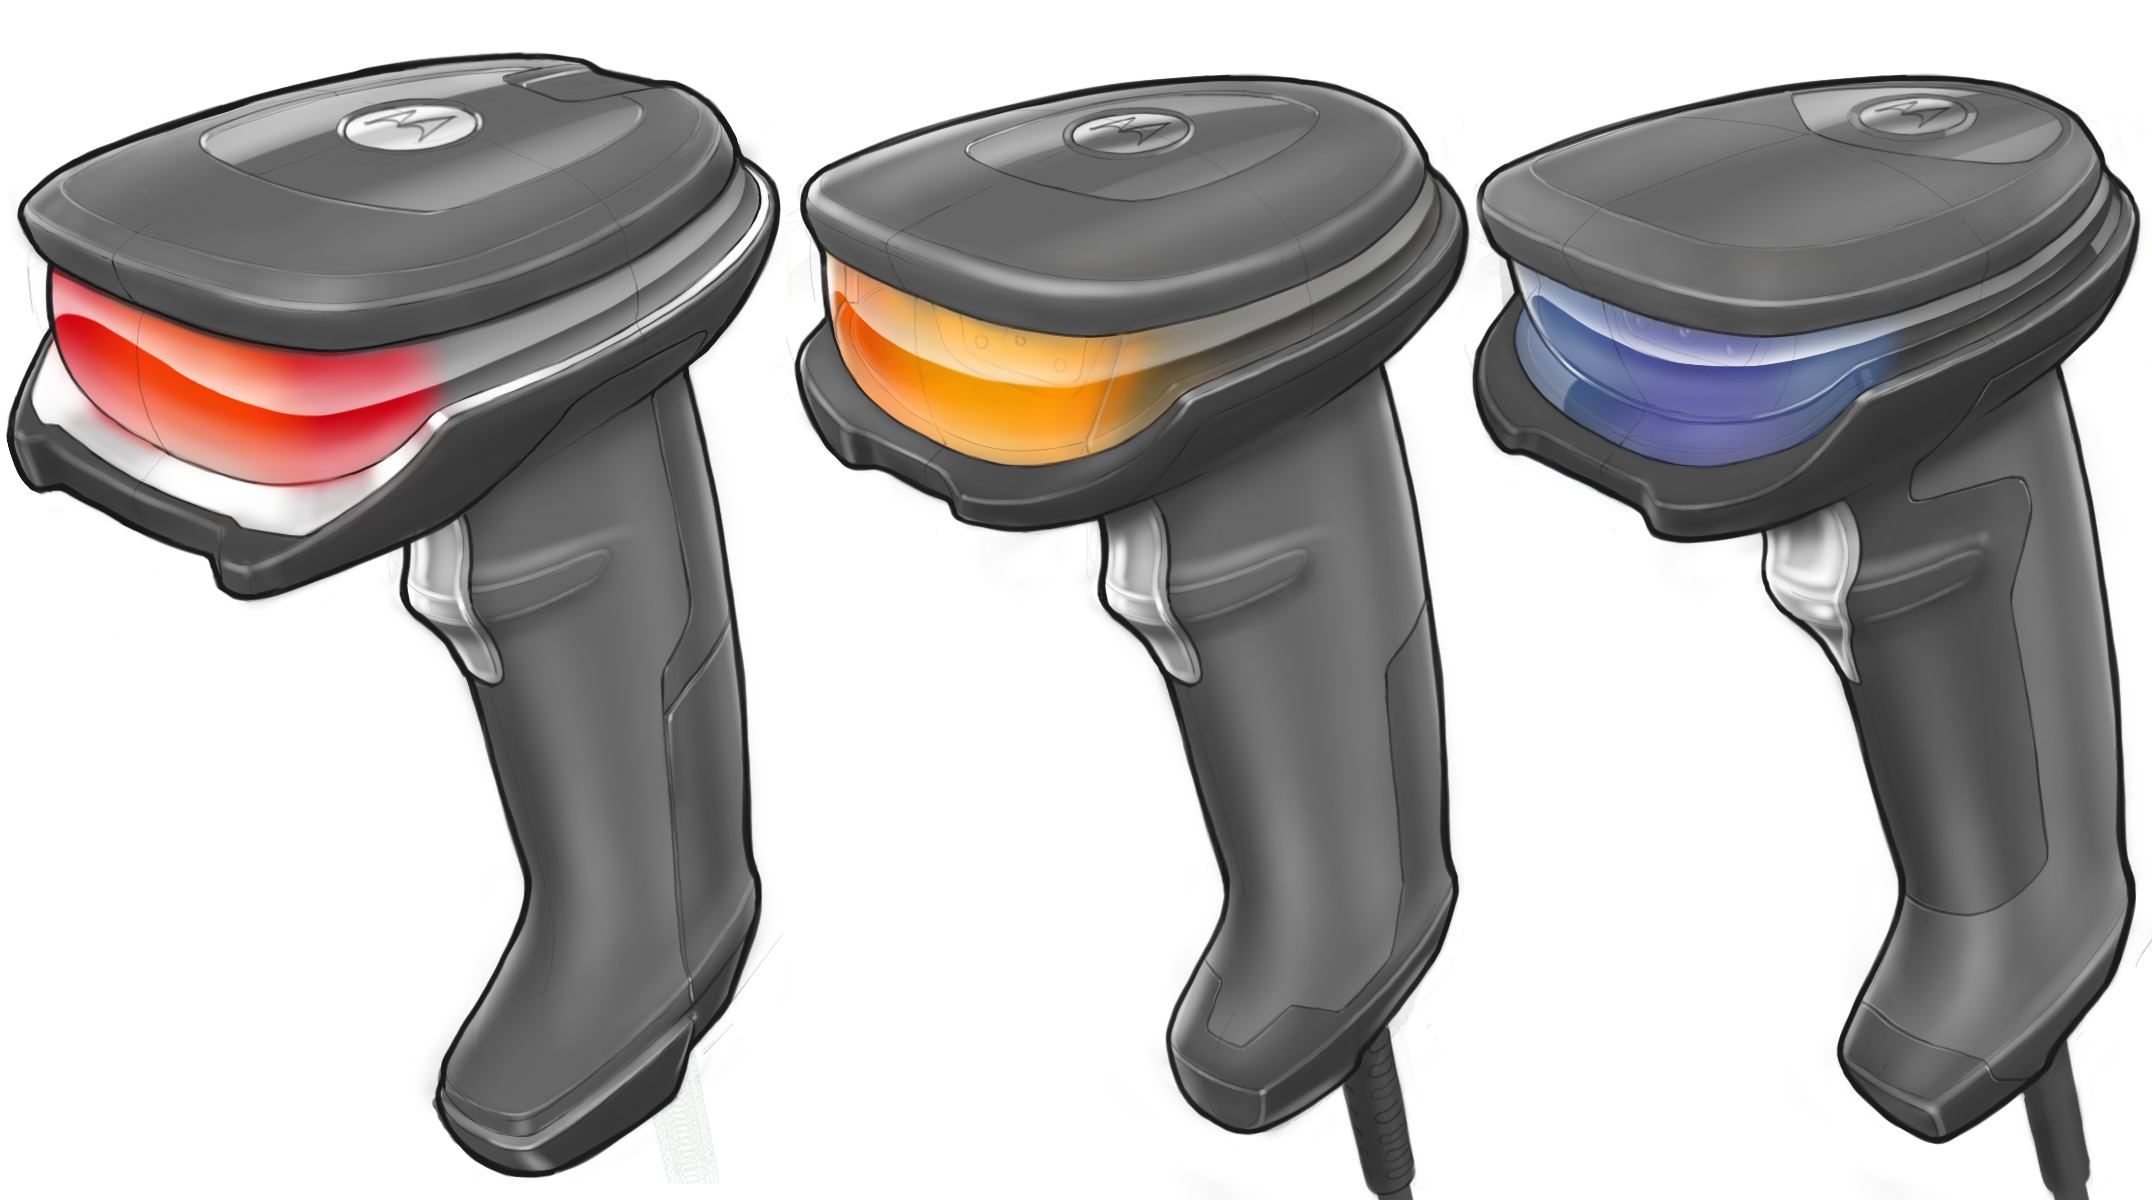 Concept sketches for different colours, materials and finishes of the mid to high-end Halo concept scanner